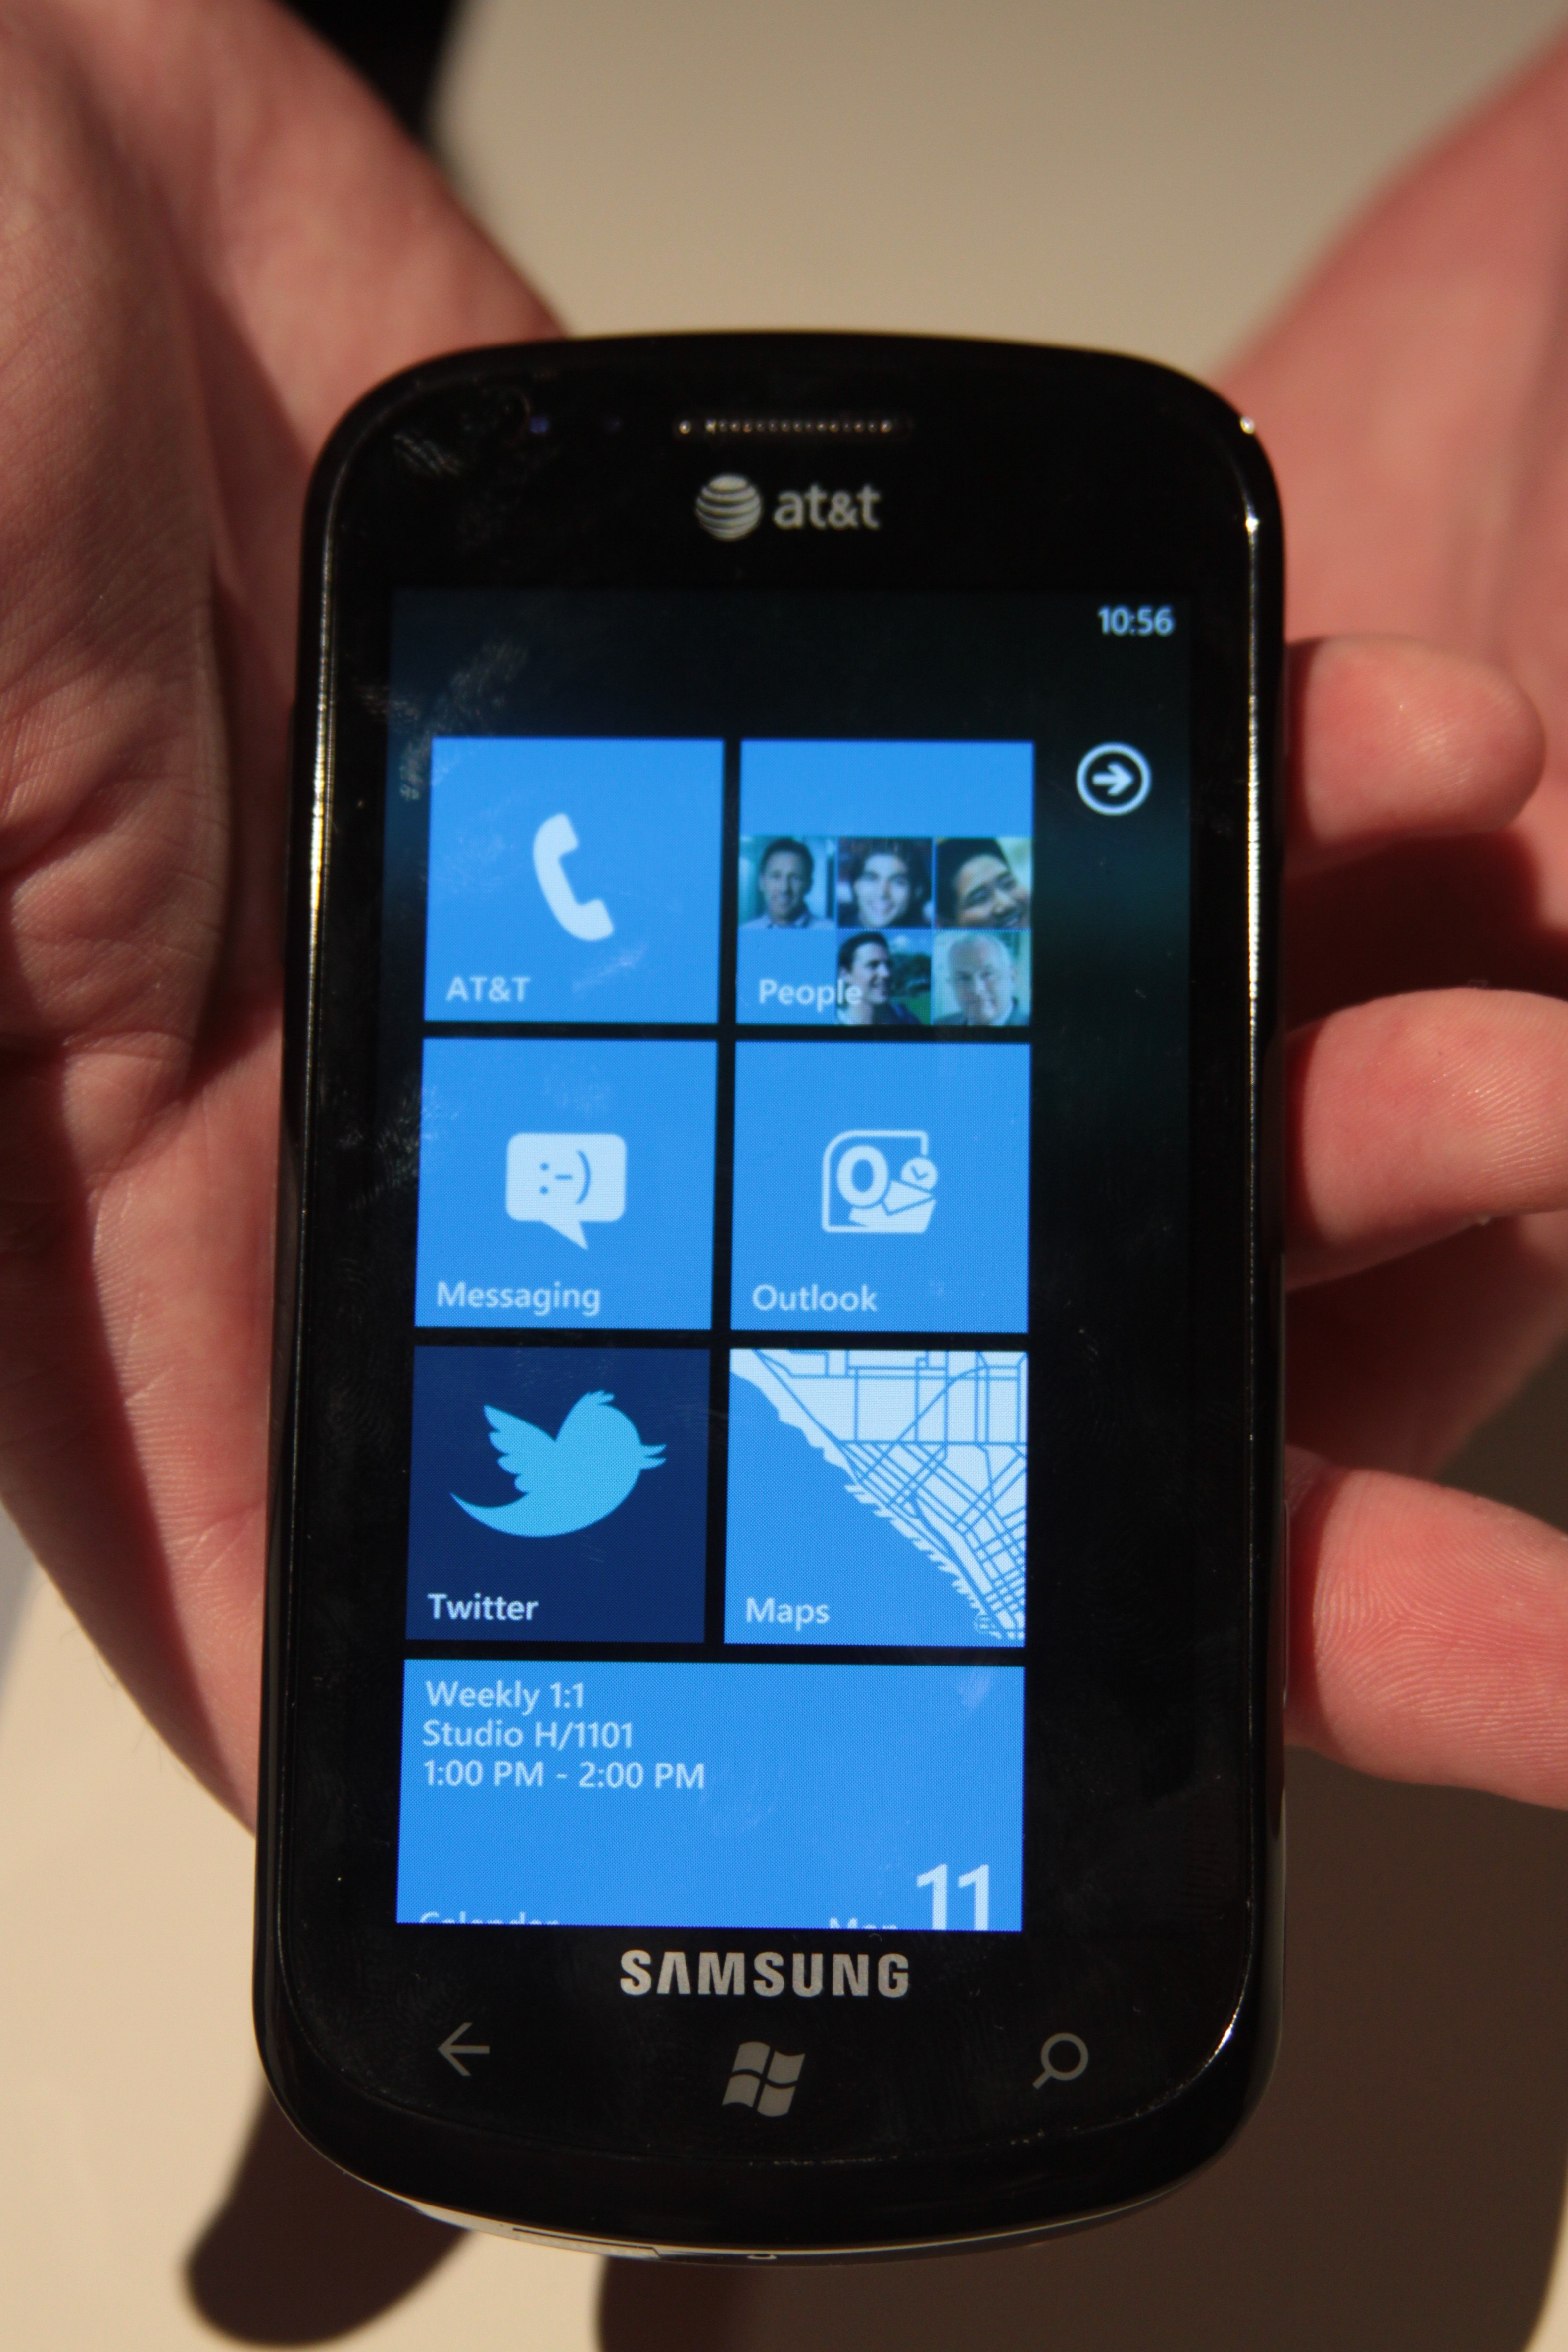 Samsung Focus Windows Phone 7 handset - Hands-on the WP7 phone from Samsung